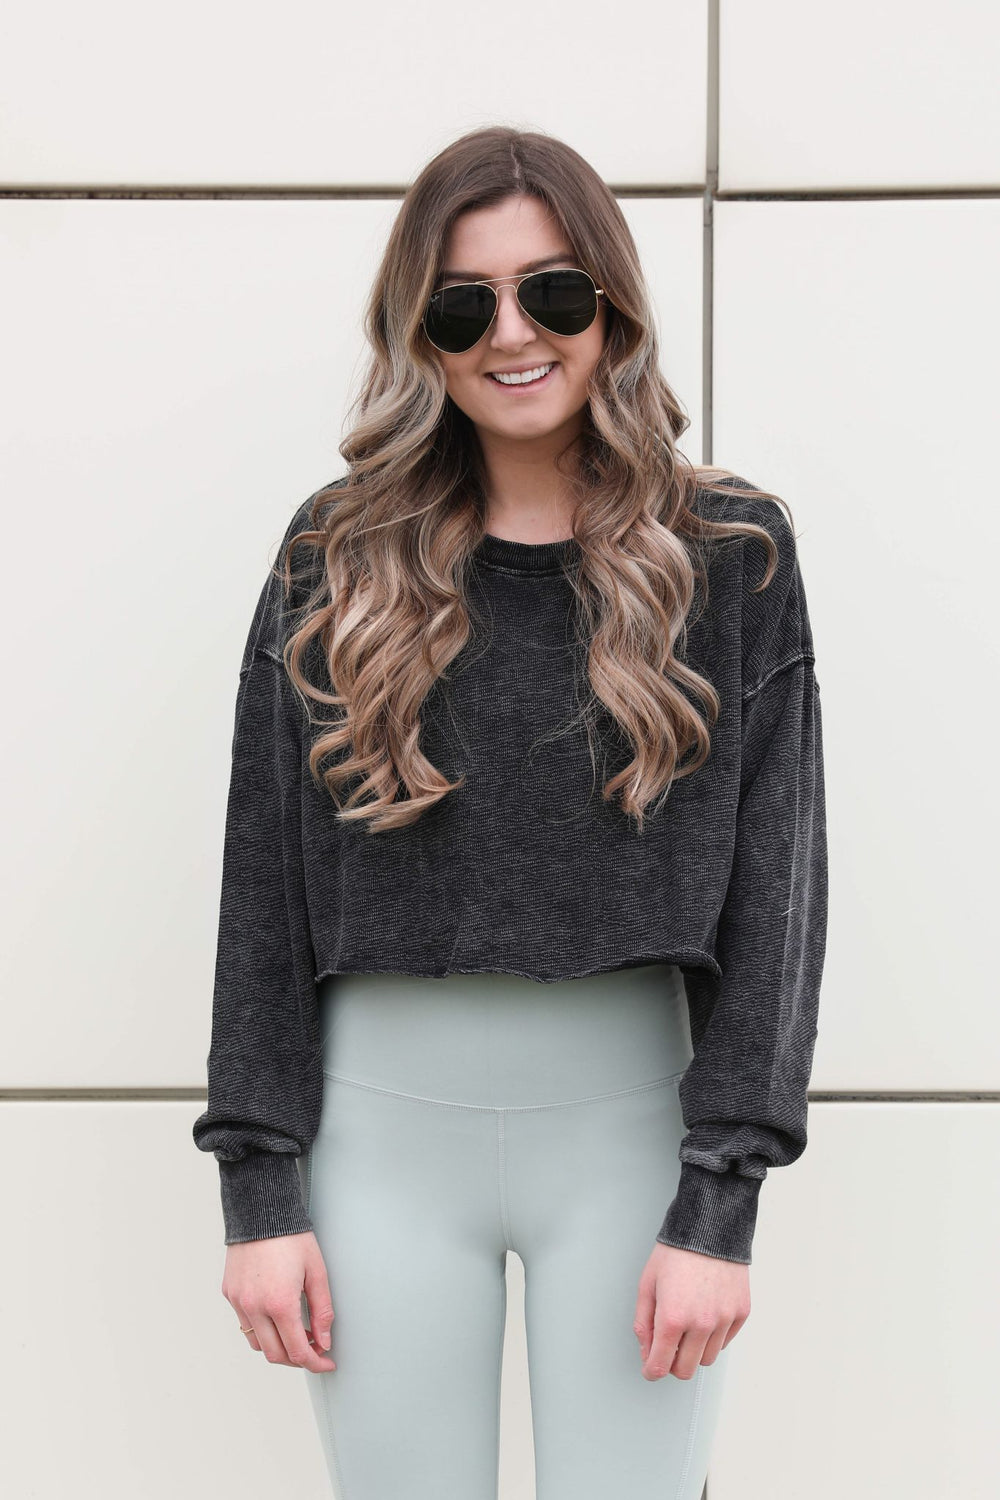 Distressed Cropped Sweatshirt - Charcoal